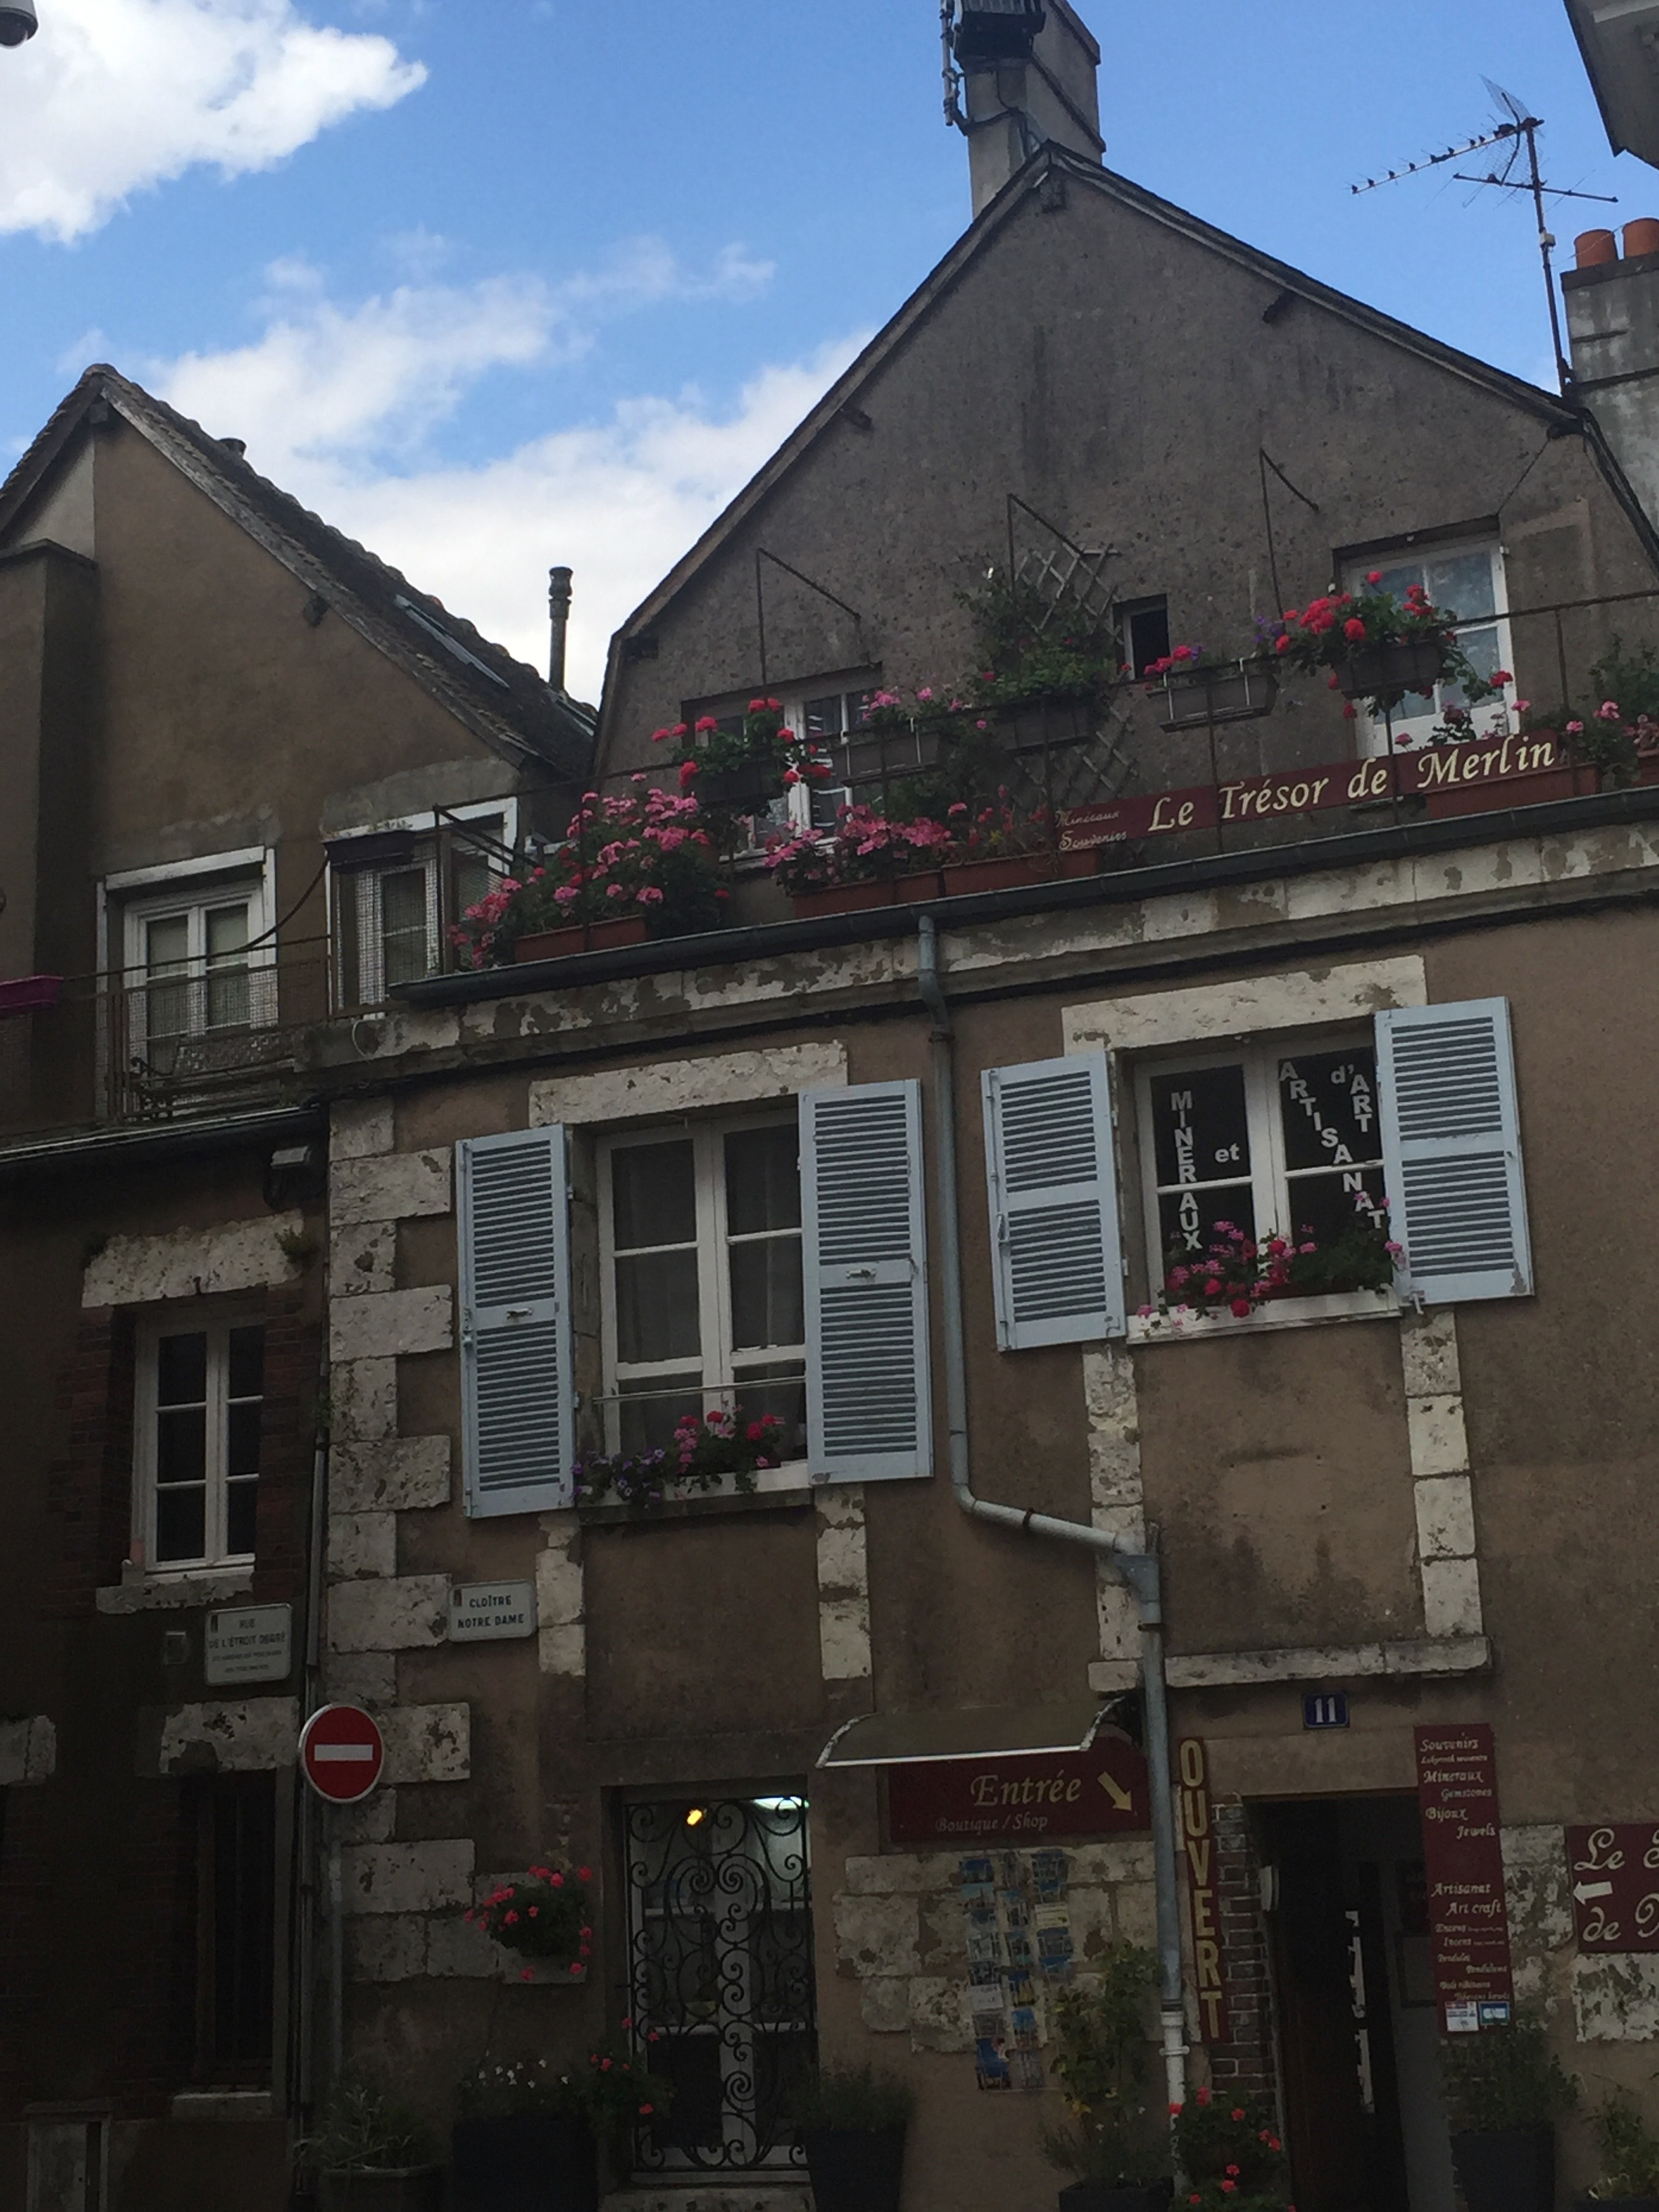 Just a pretty building in Chartres